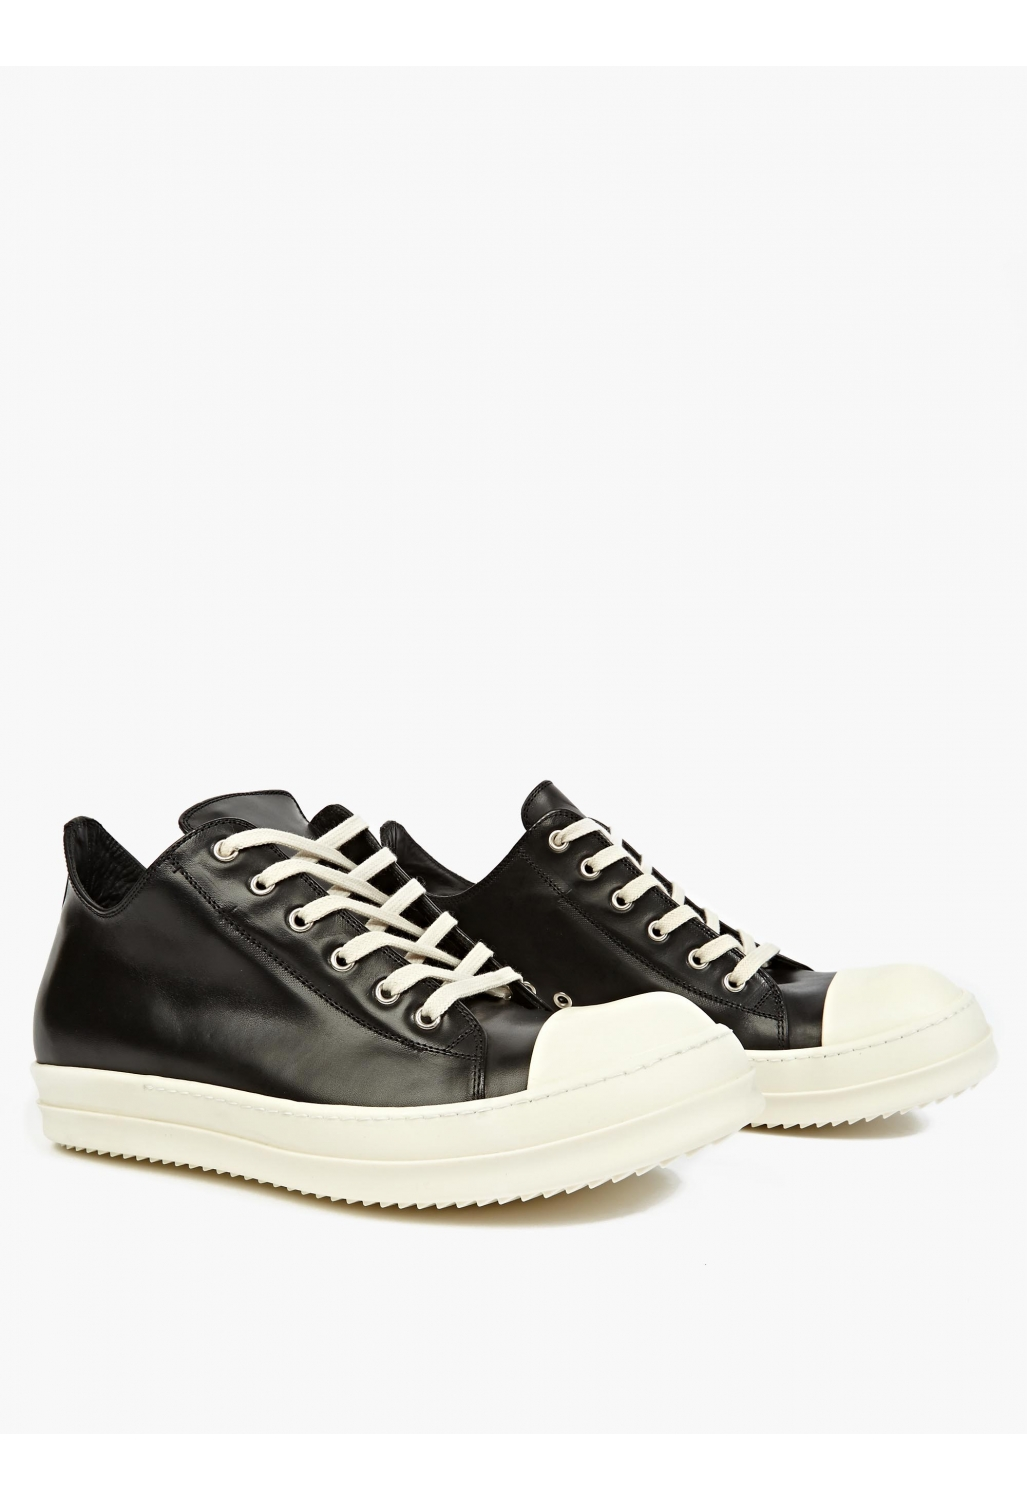 Black Leather Low-Top Sneakers by Rick